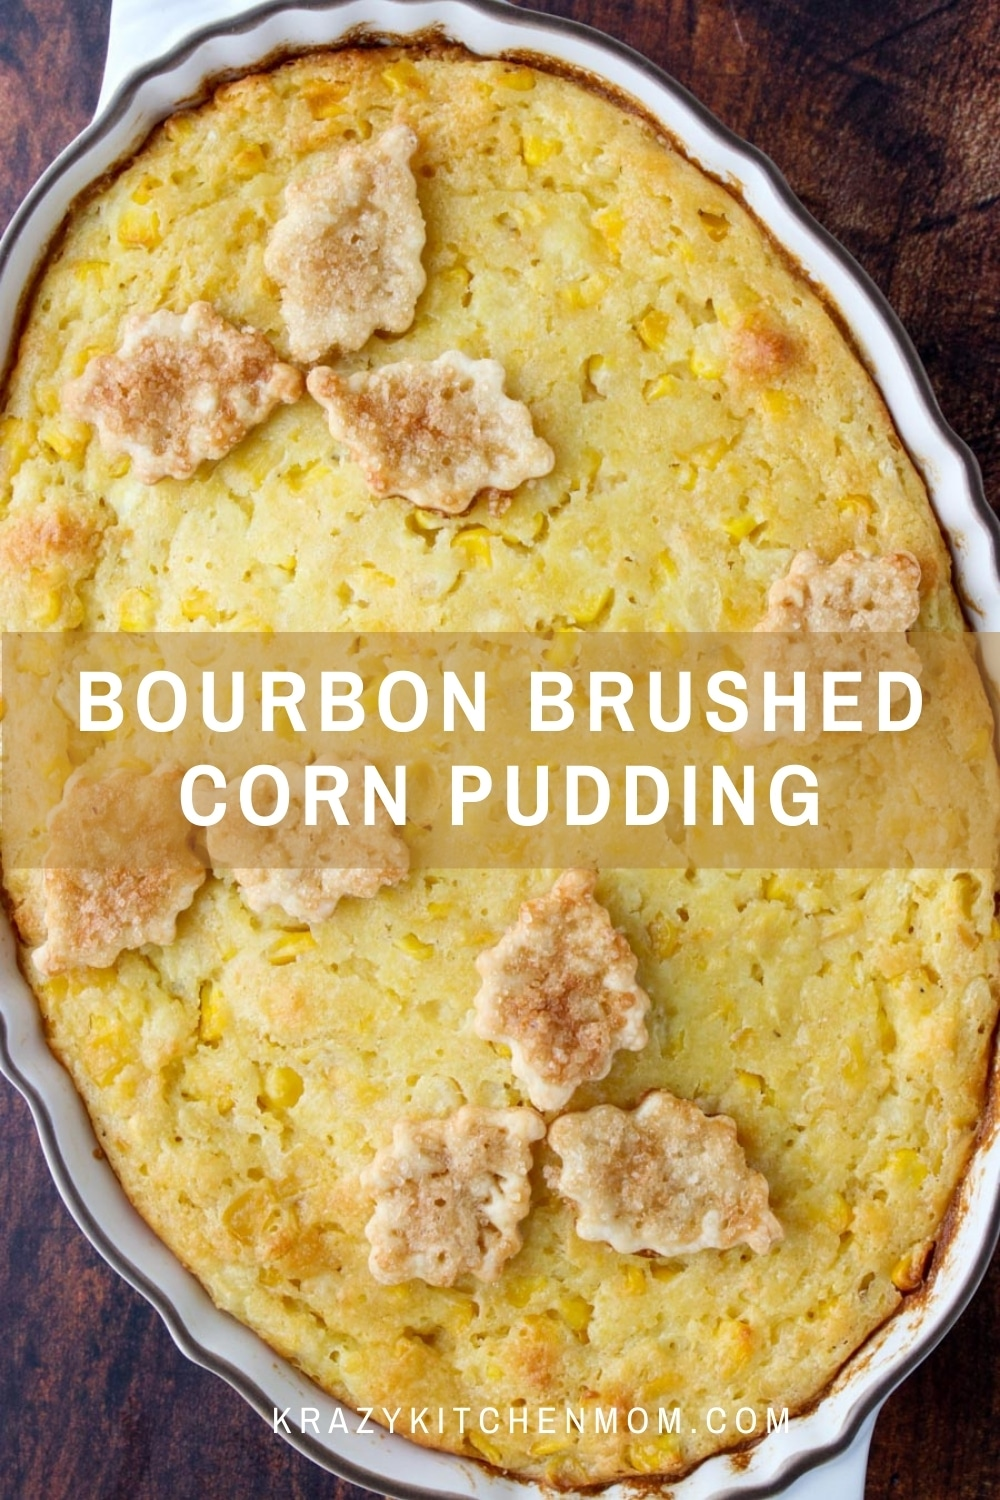 This is your real southern cornbread pudding, spiked with a splash of bourbon, and then kissed with more bourbon after it's baked.  via @krazykitchenmom